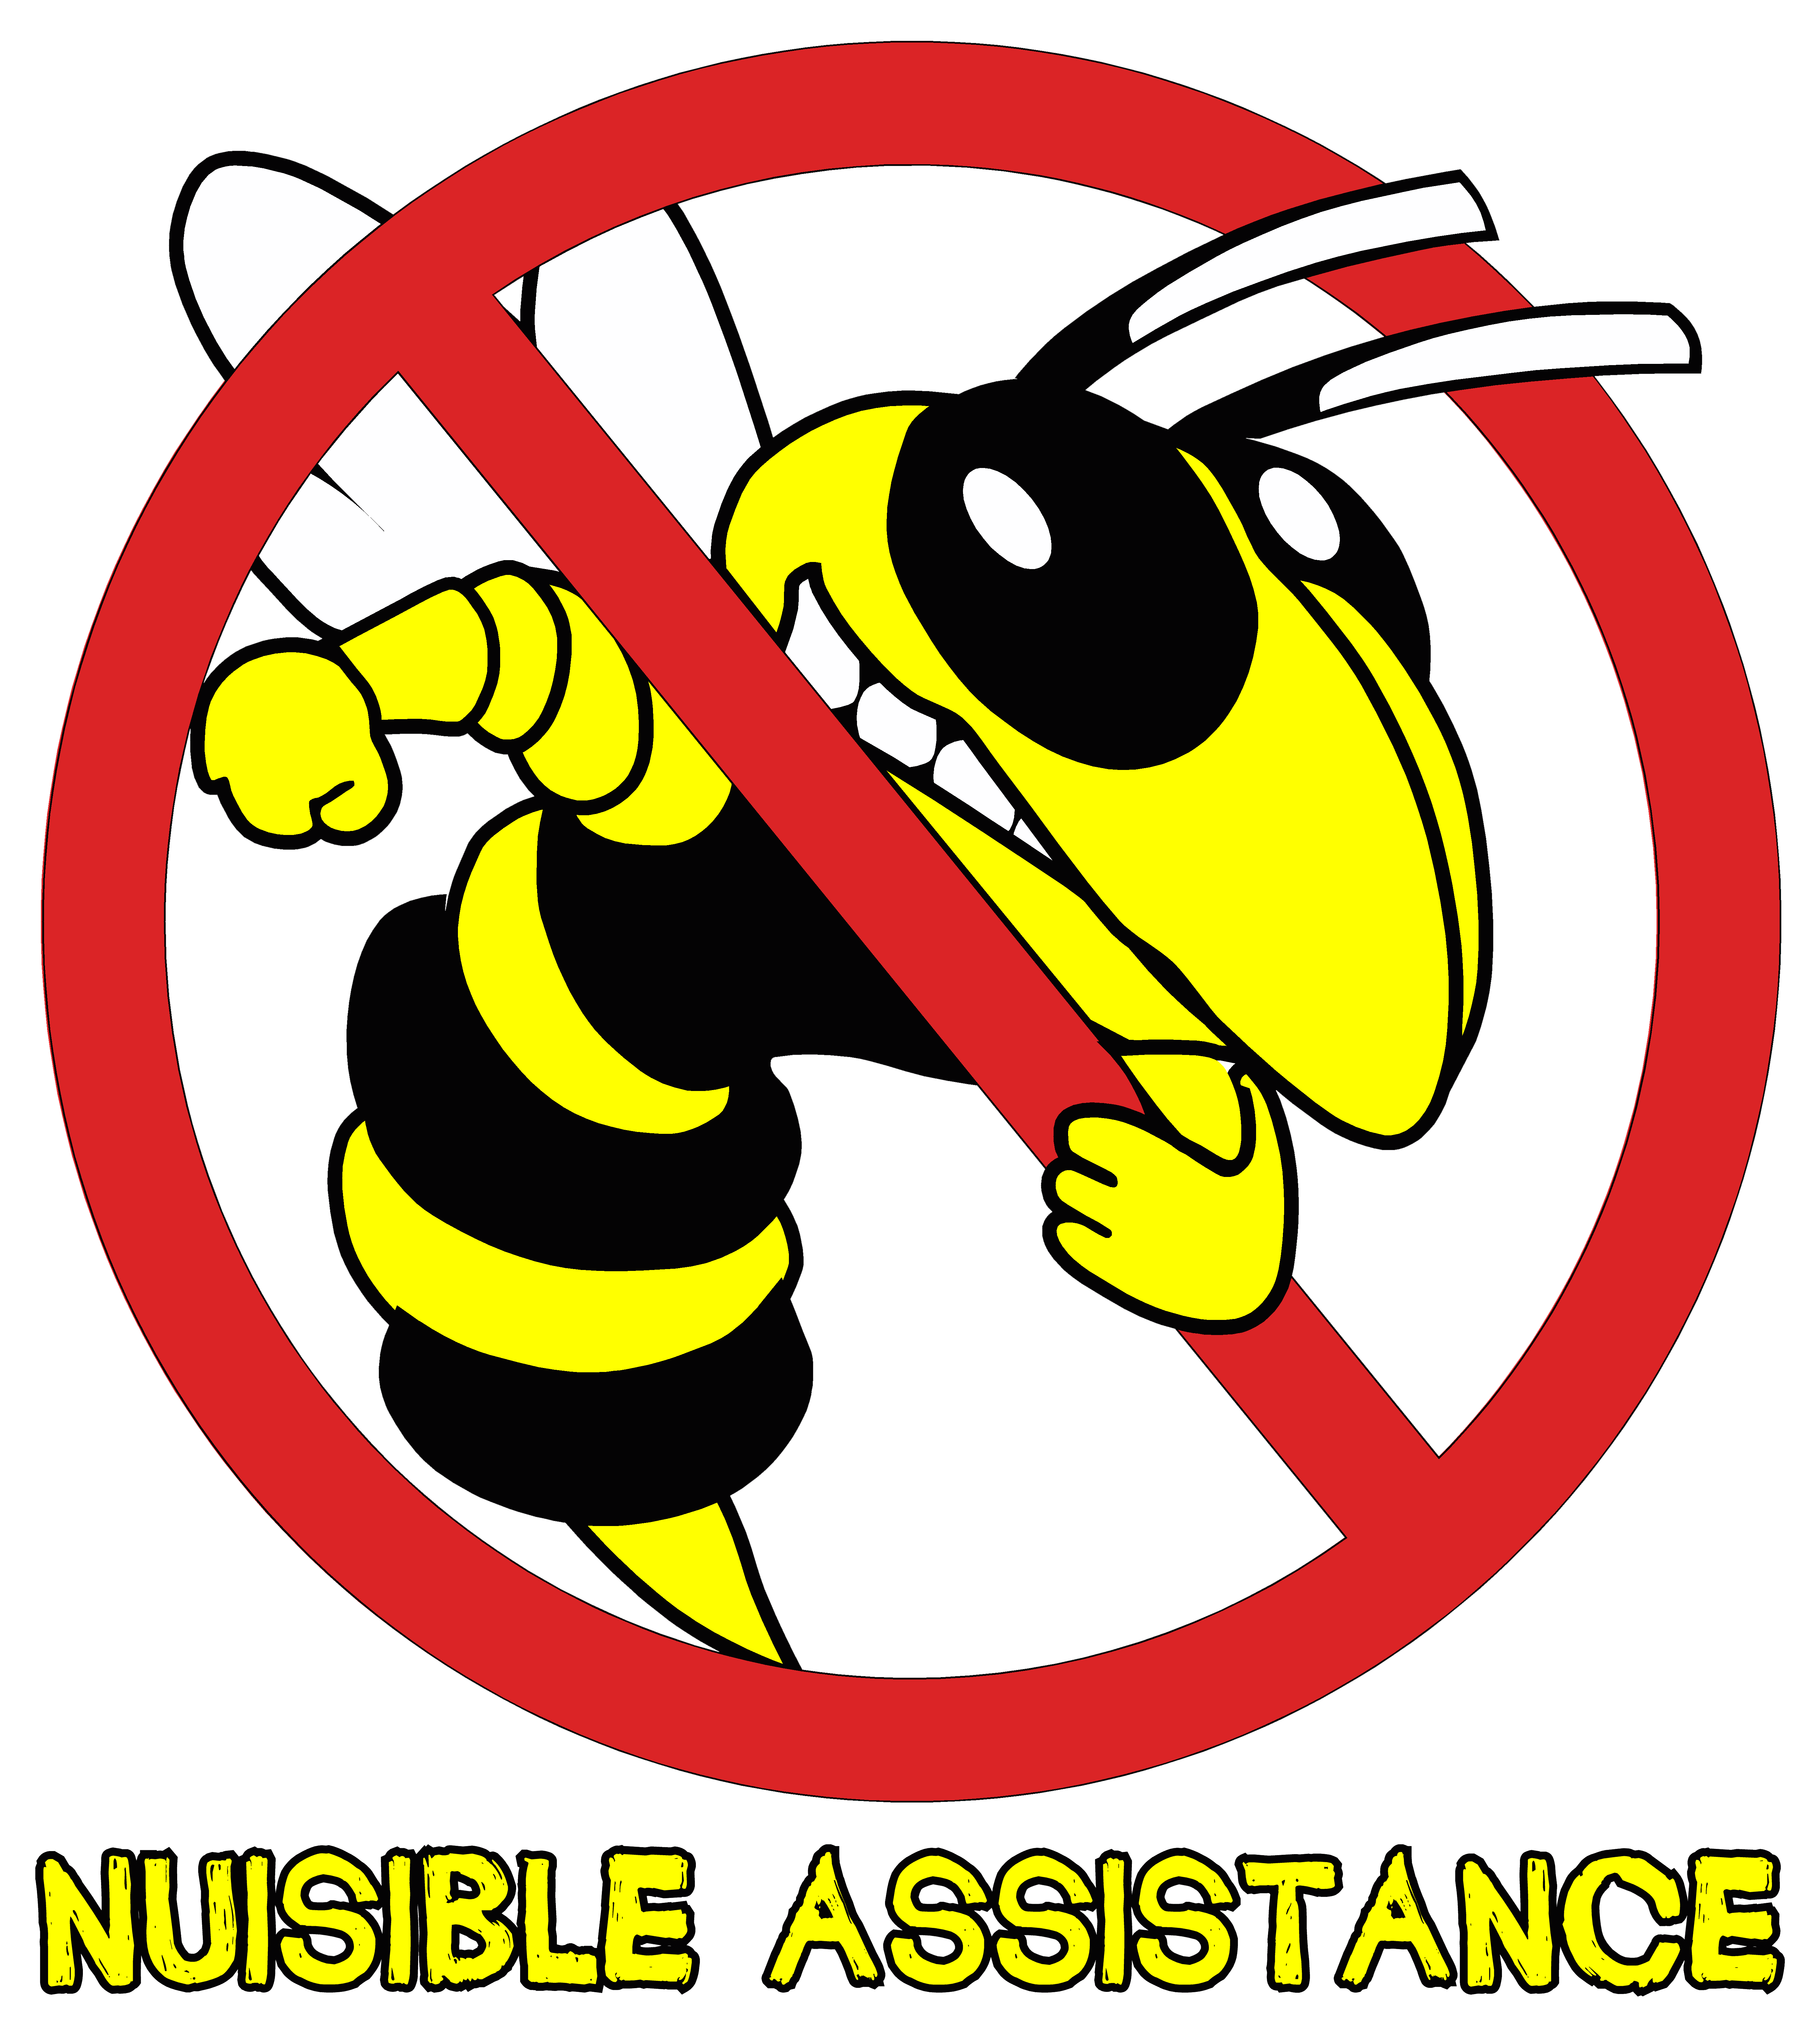 NUISIBLE ASSISTANCE